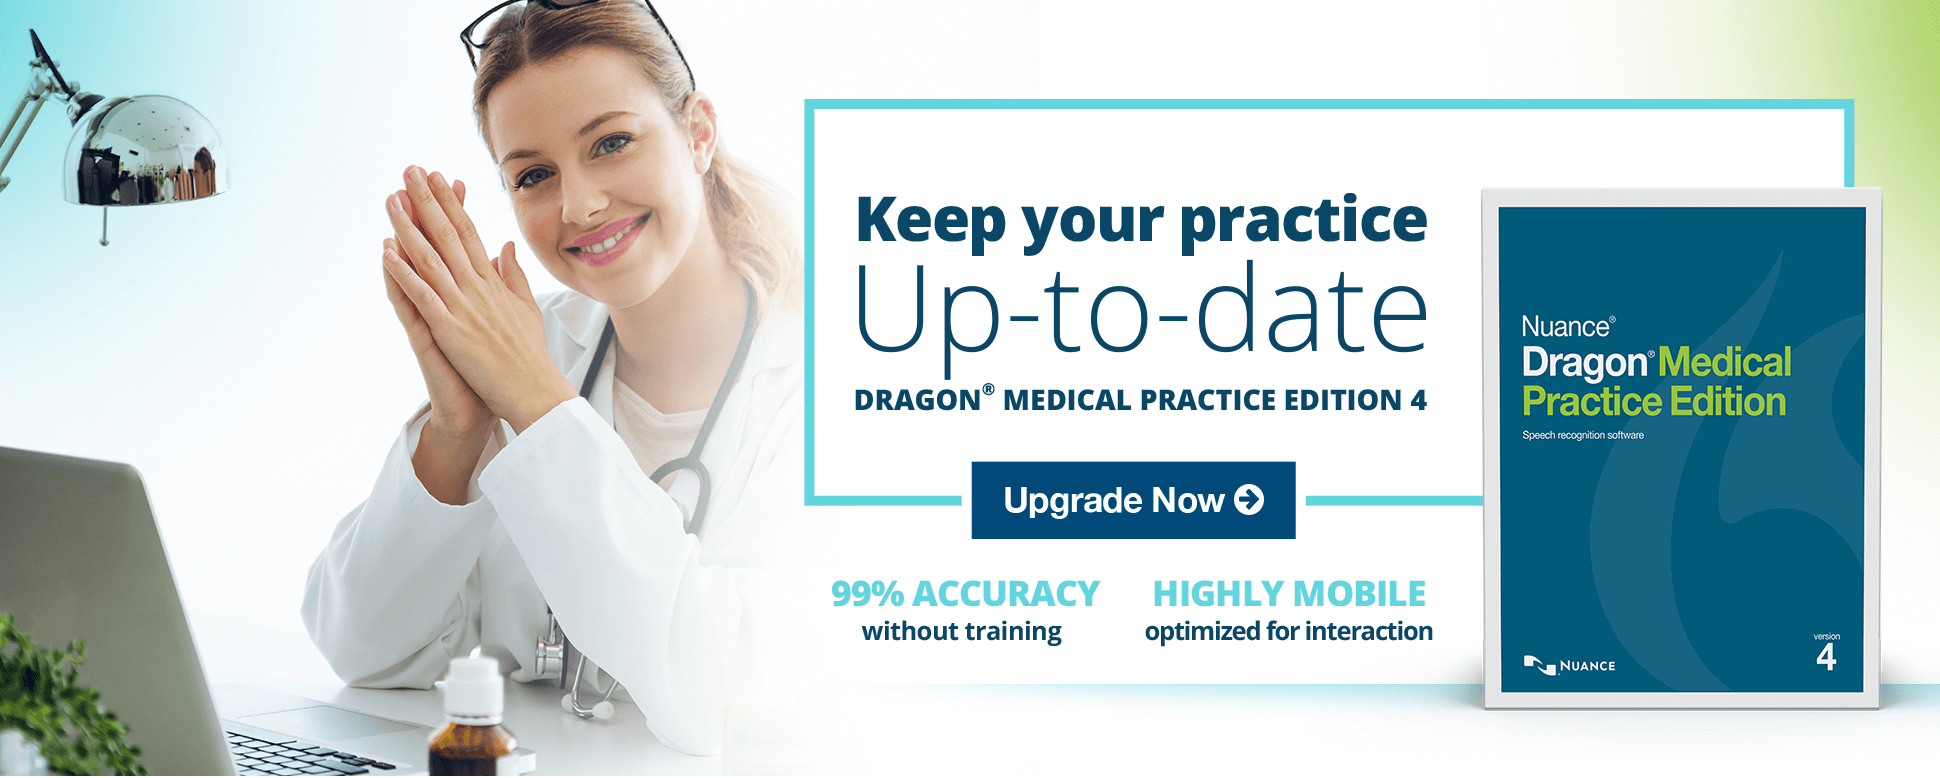 Keep your practice up-to-date Dragon Medical Practice Edition 4